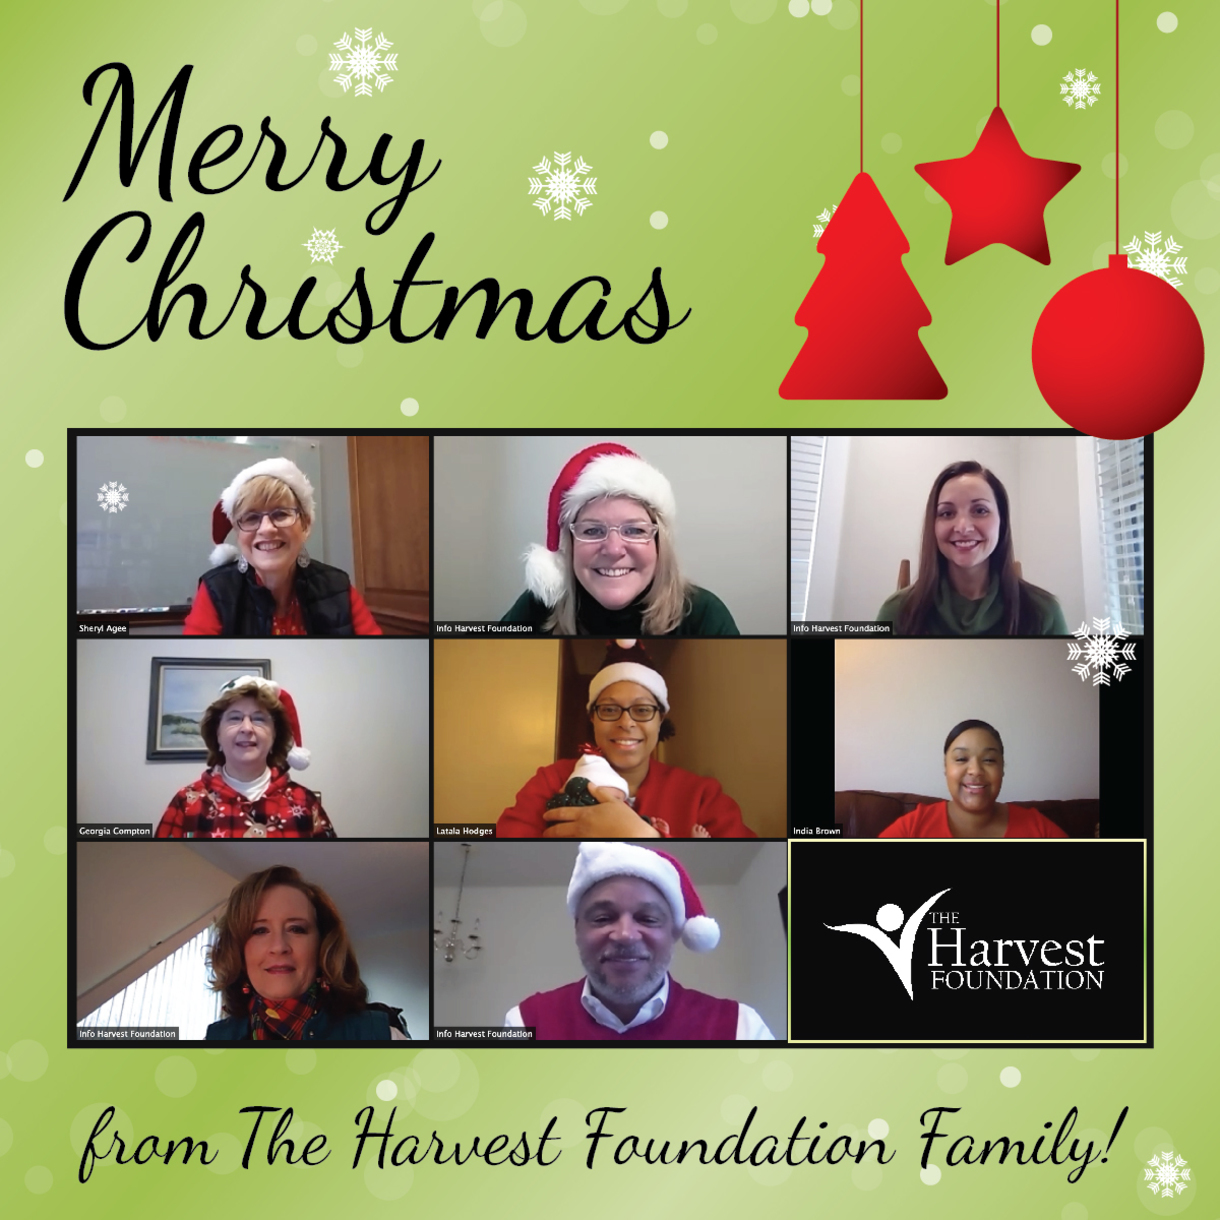 Merry Christmas from The Harvest Foundation